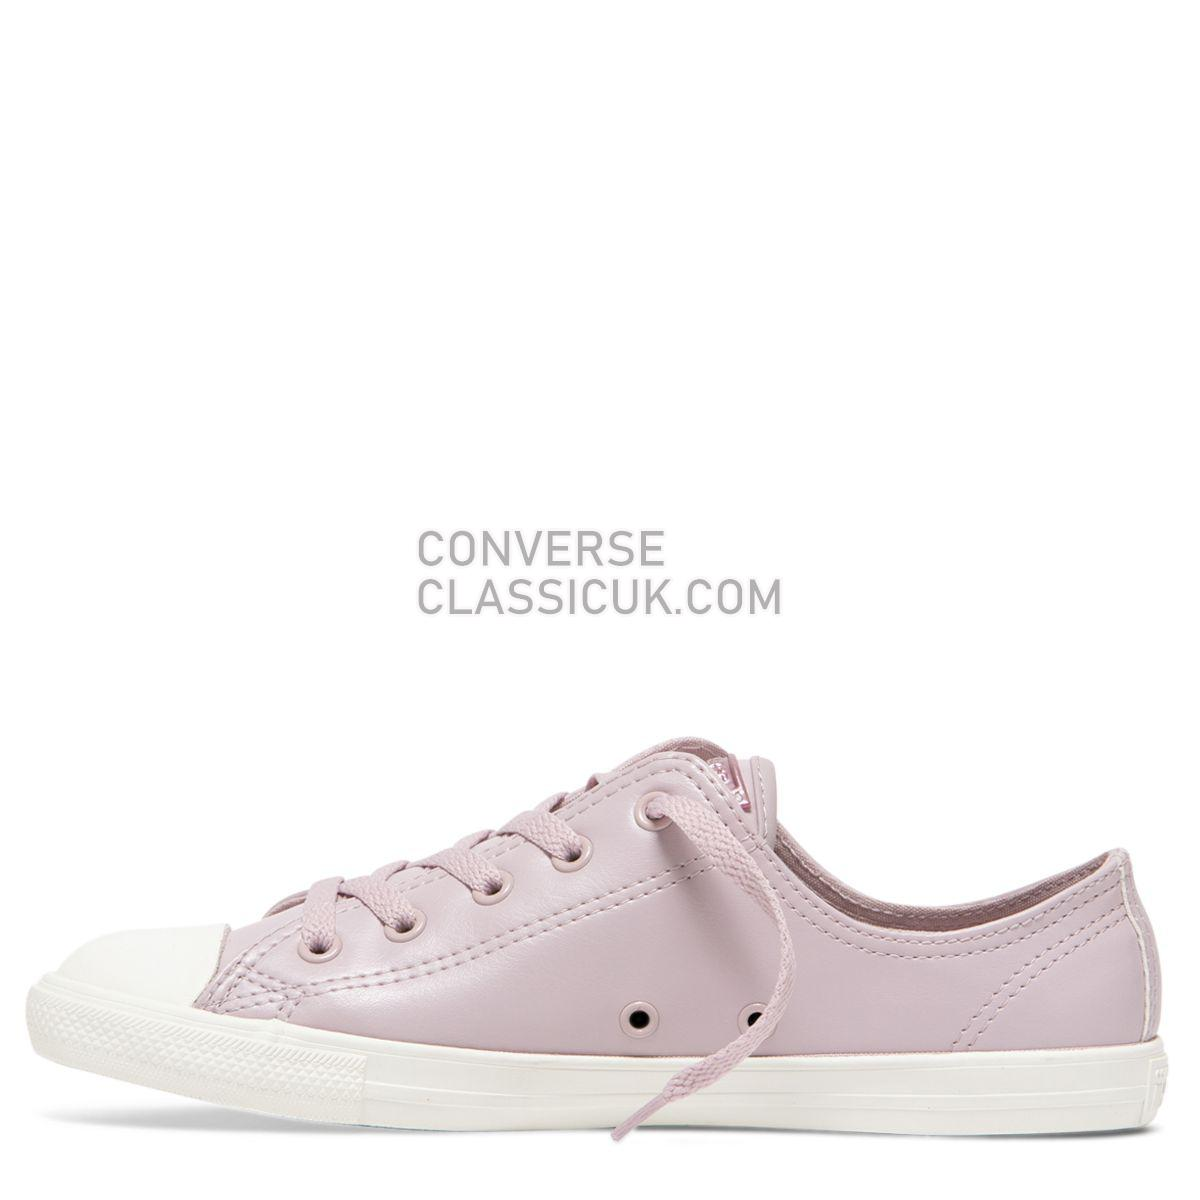 Converse Chuck Taylor All Star Dainty Craft Low Top Plum Chalk Womens 564426 Plum Chalk/Plum Chalk/Vintage White Shoes